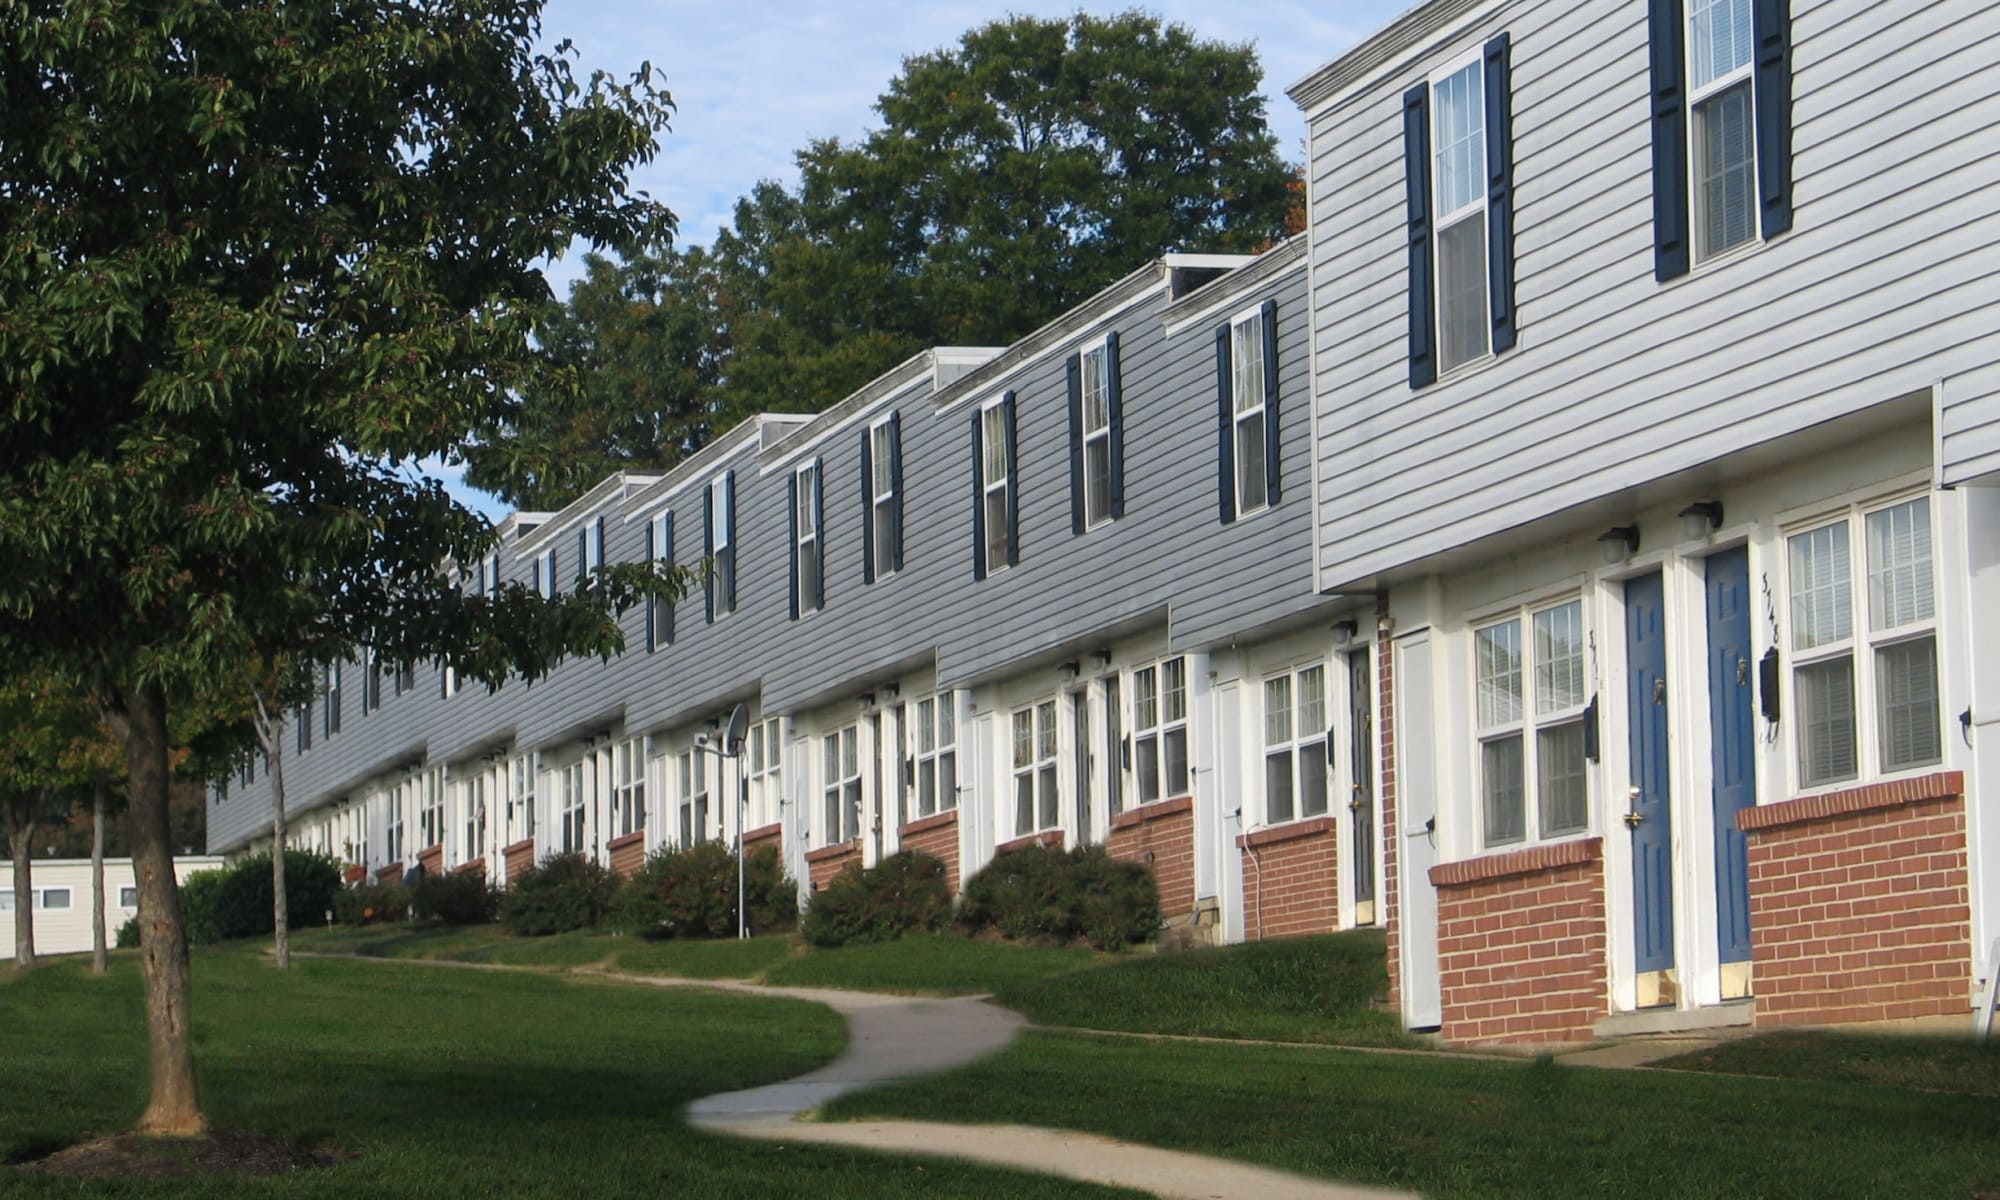 Apartments in Halethorpe, MD